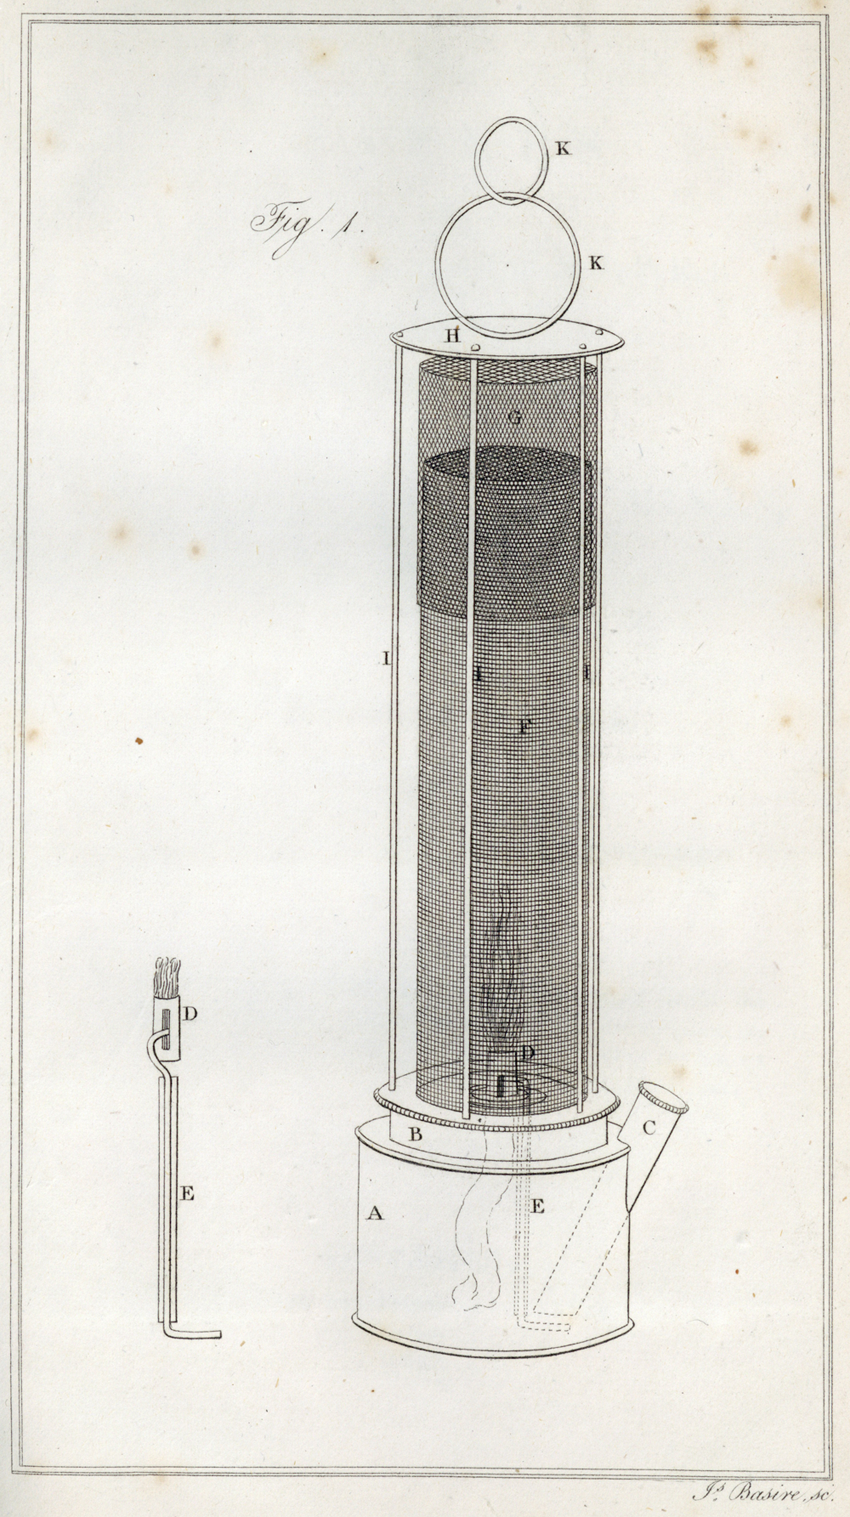 Engraving of Stephenson's miner's safety lamp